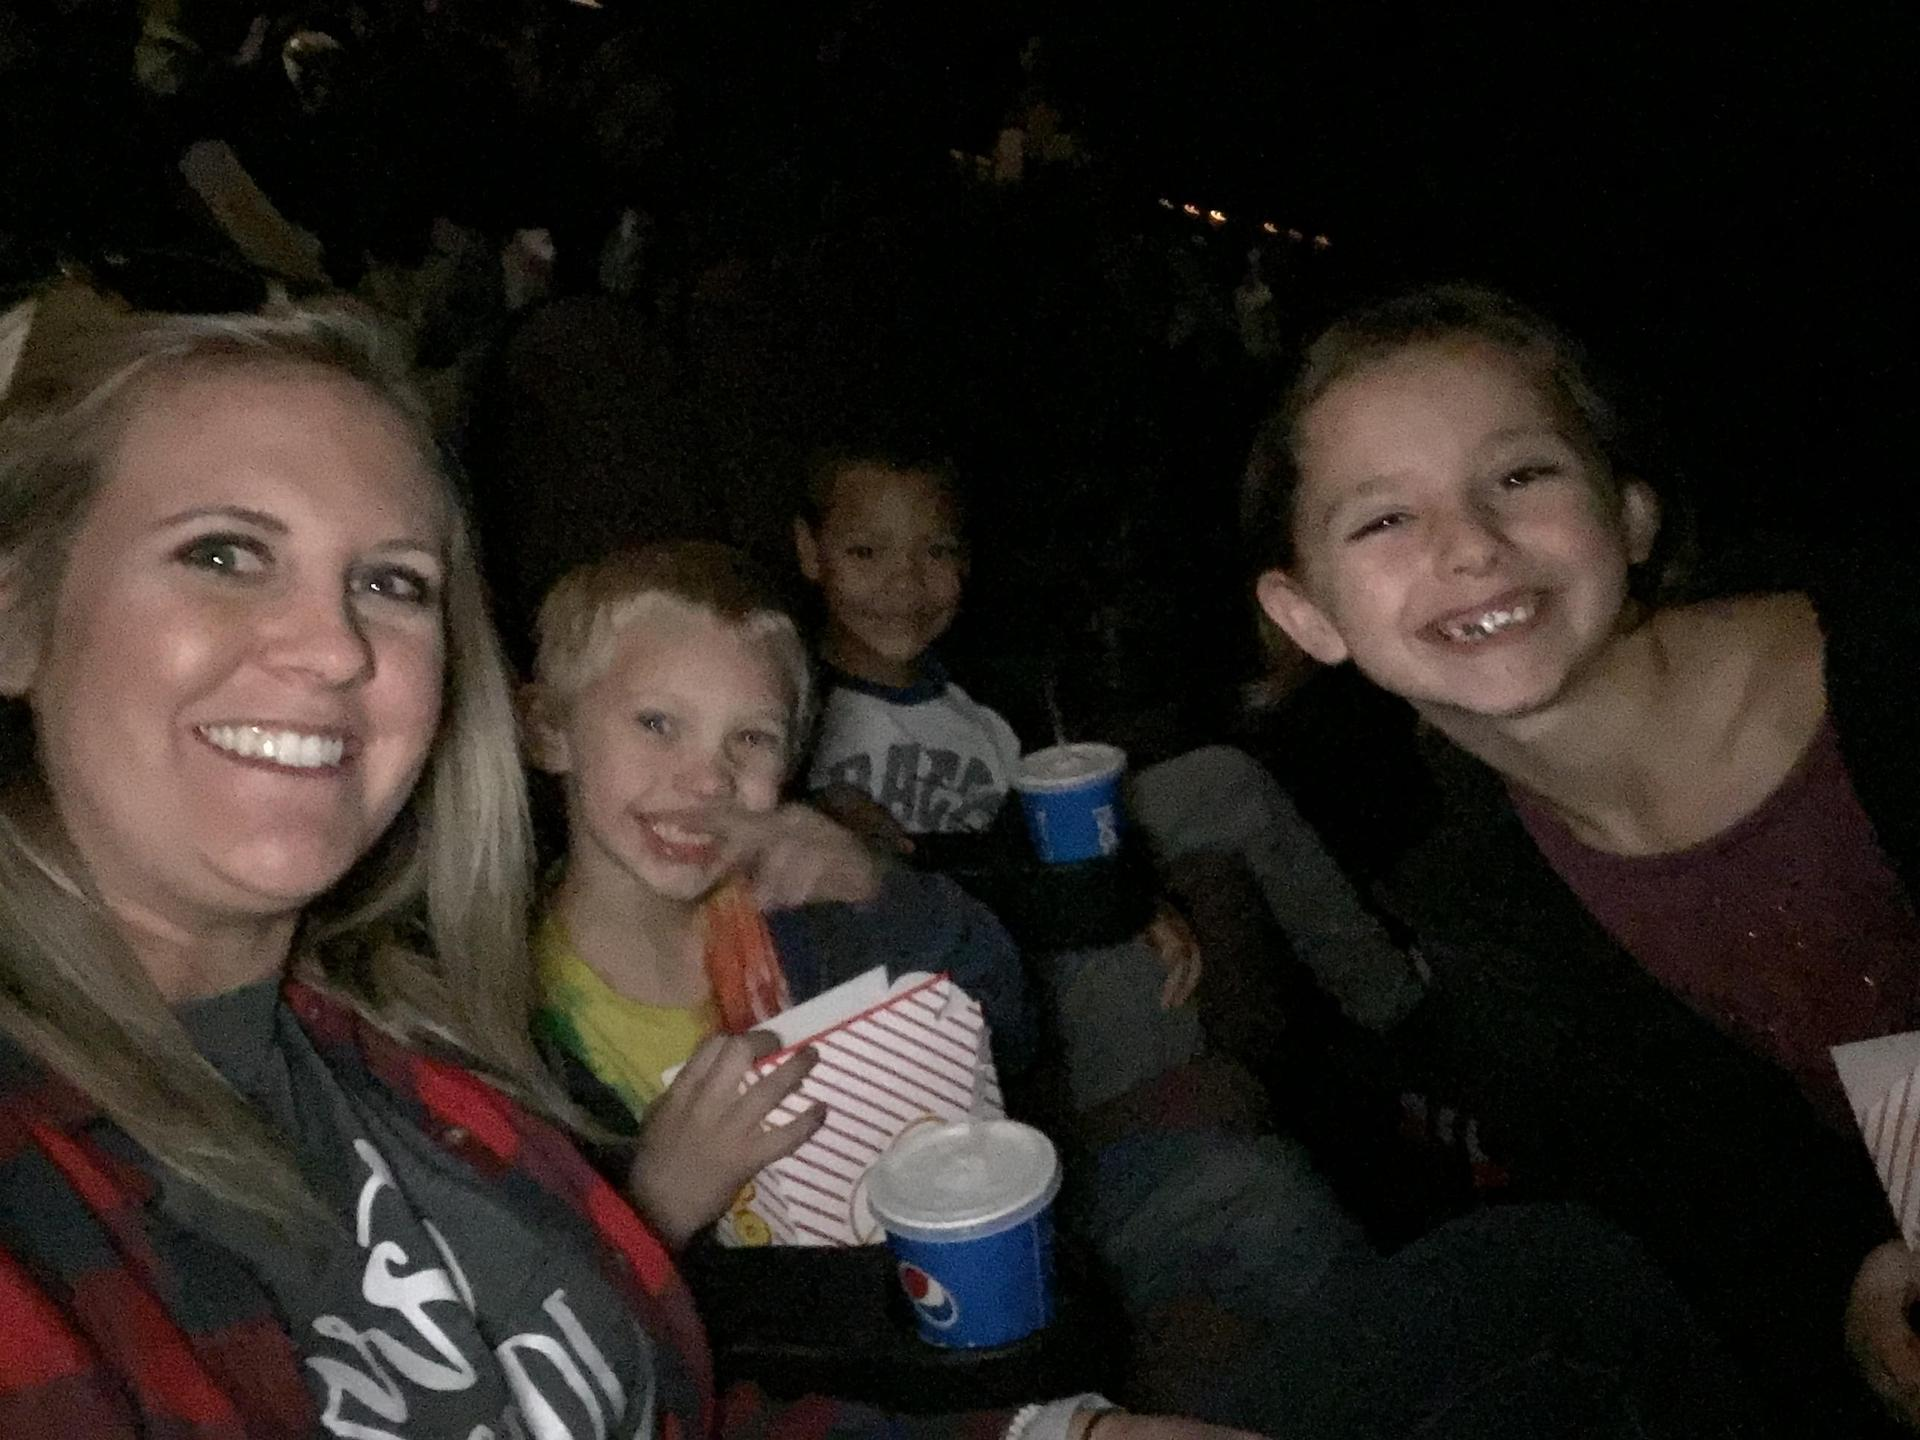 Field Trip to see the Grinch